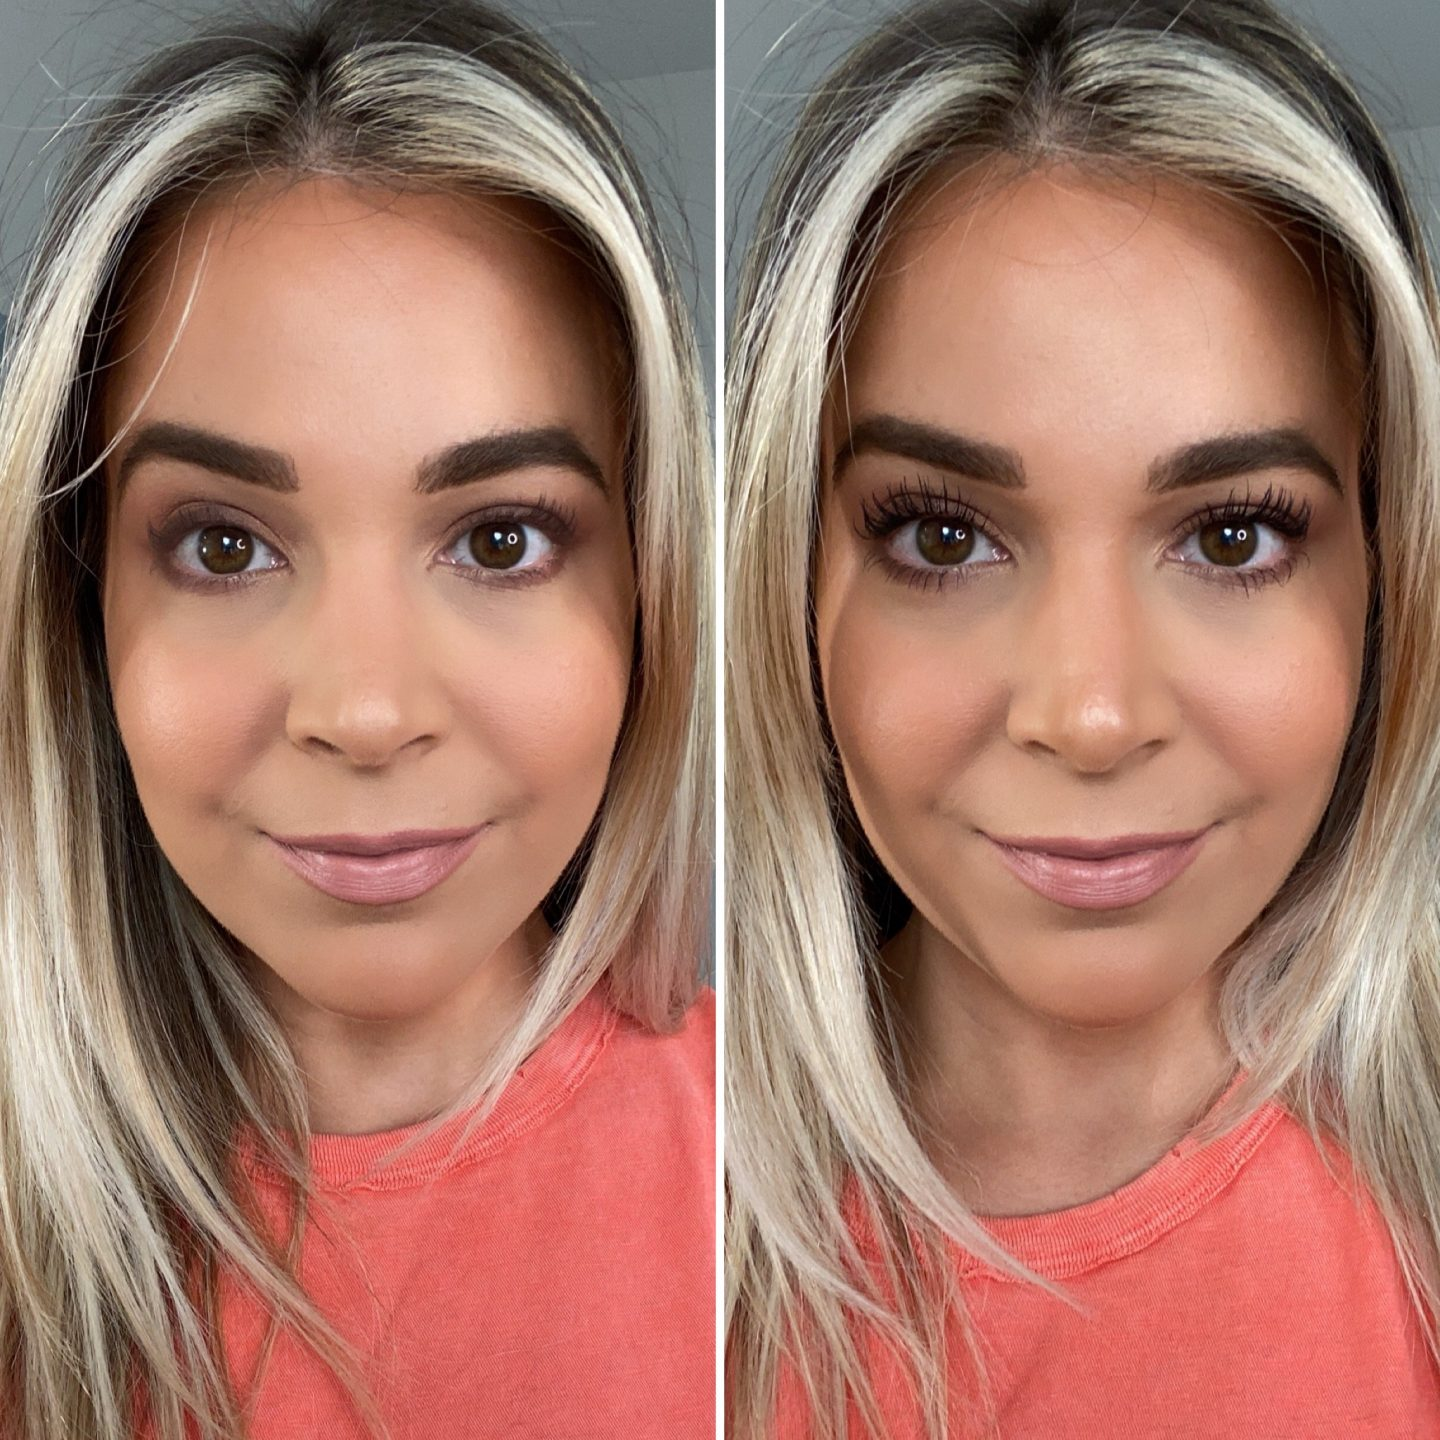 Ilia Fullest Volumizing Mascara before and after   Brighter Darling Blog